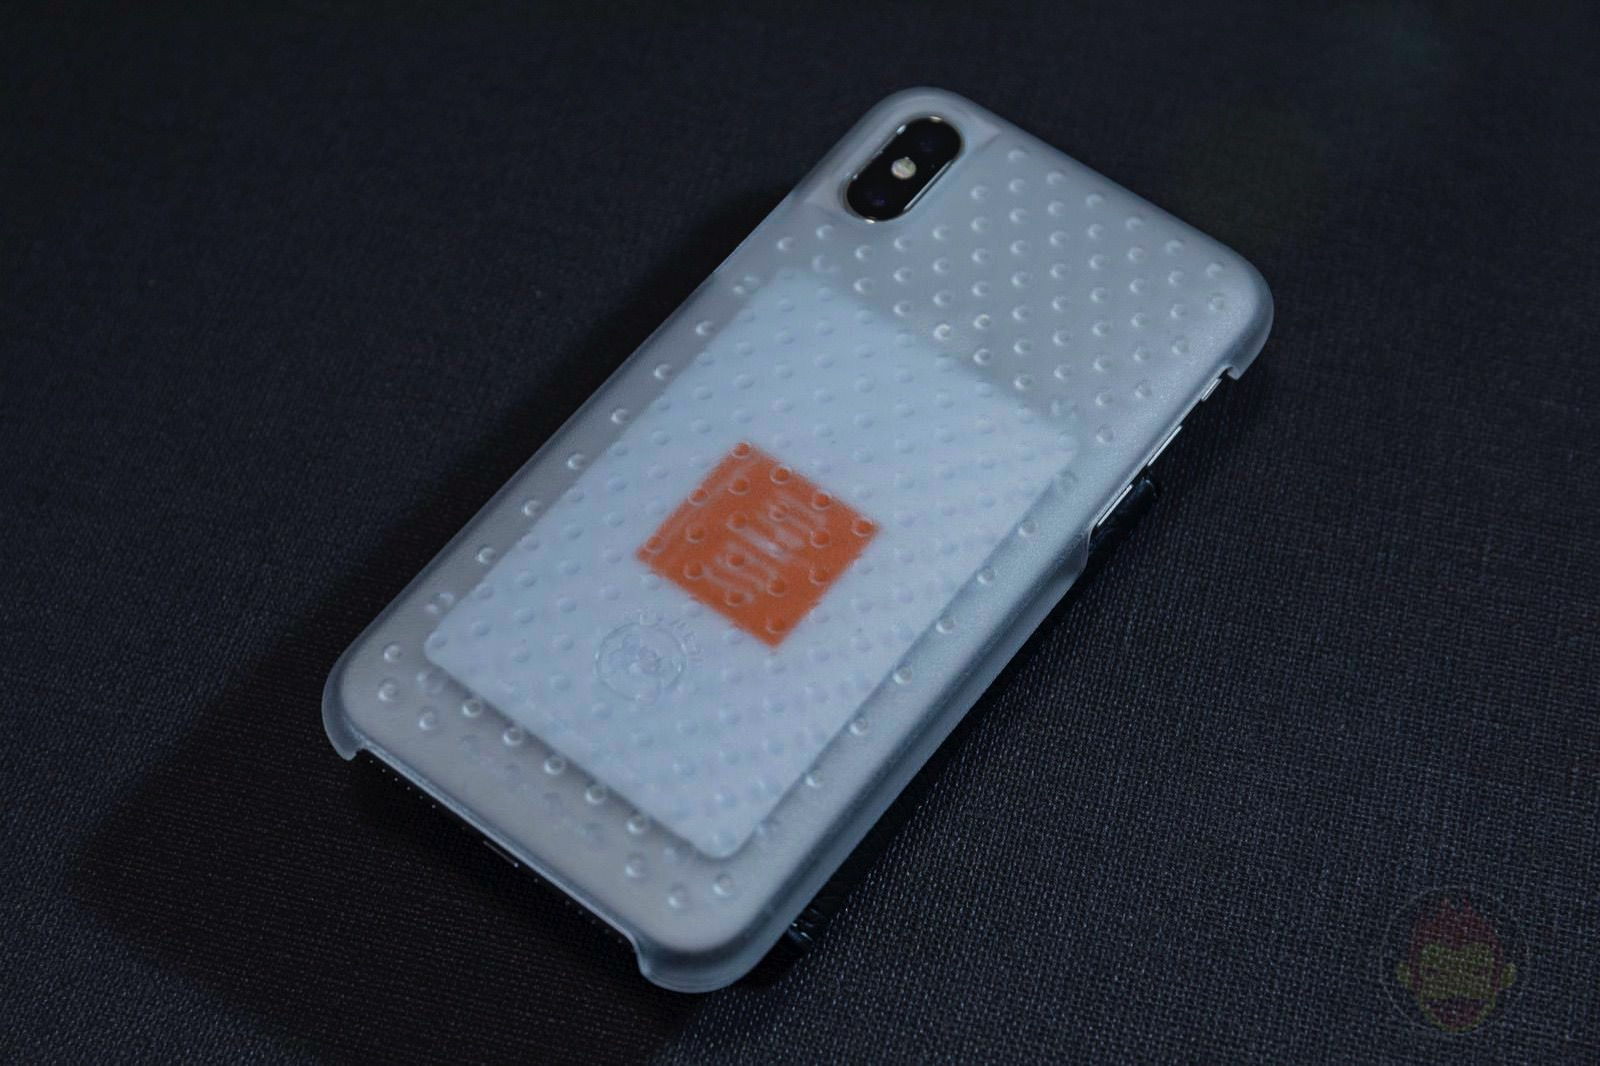 AndMesh-Haptic-Case-for-iPhone-09.jpg